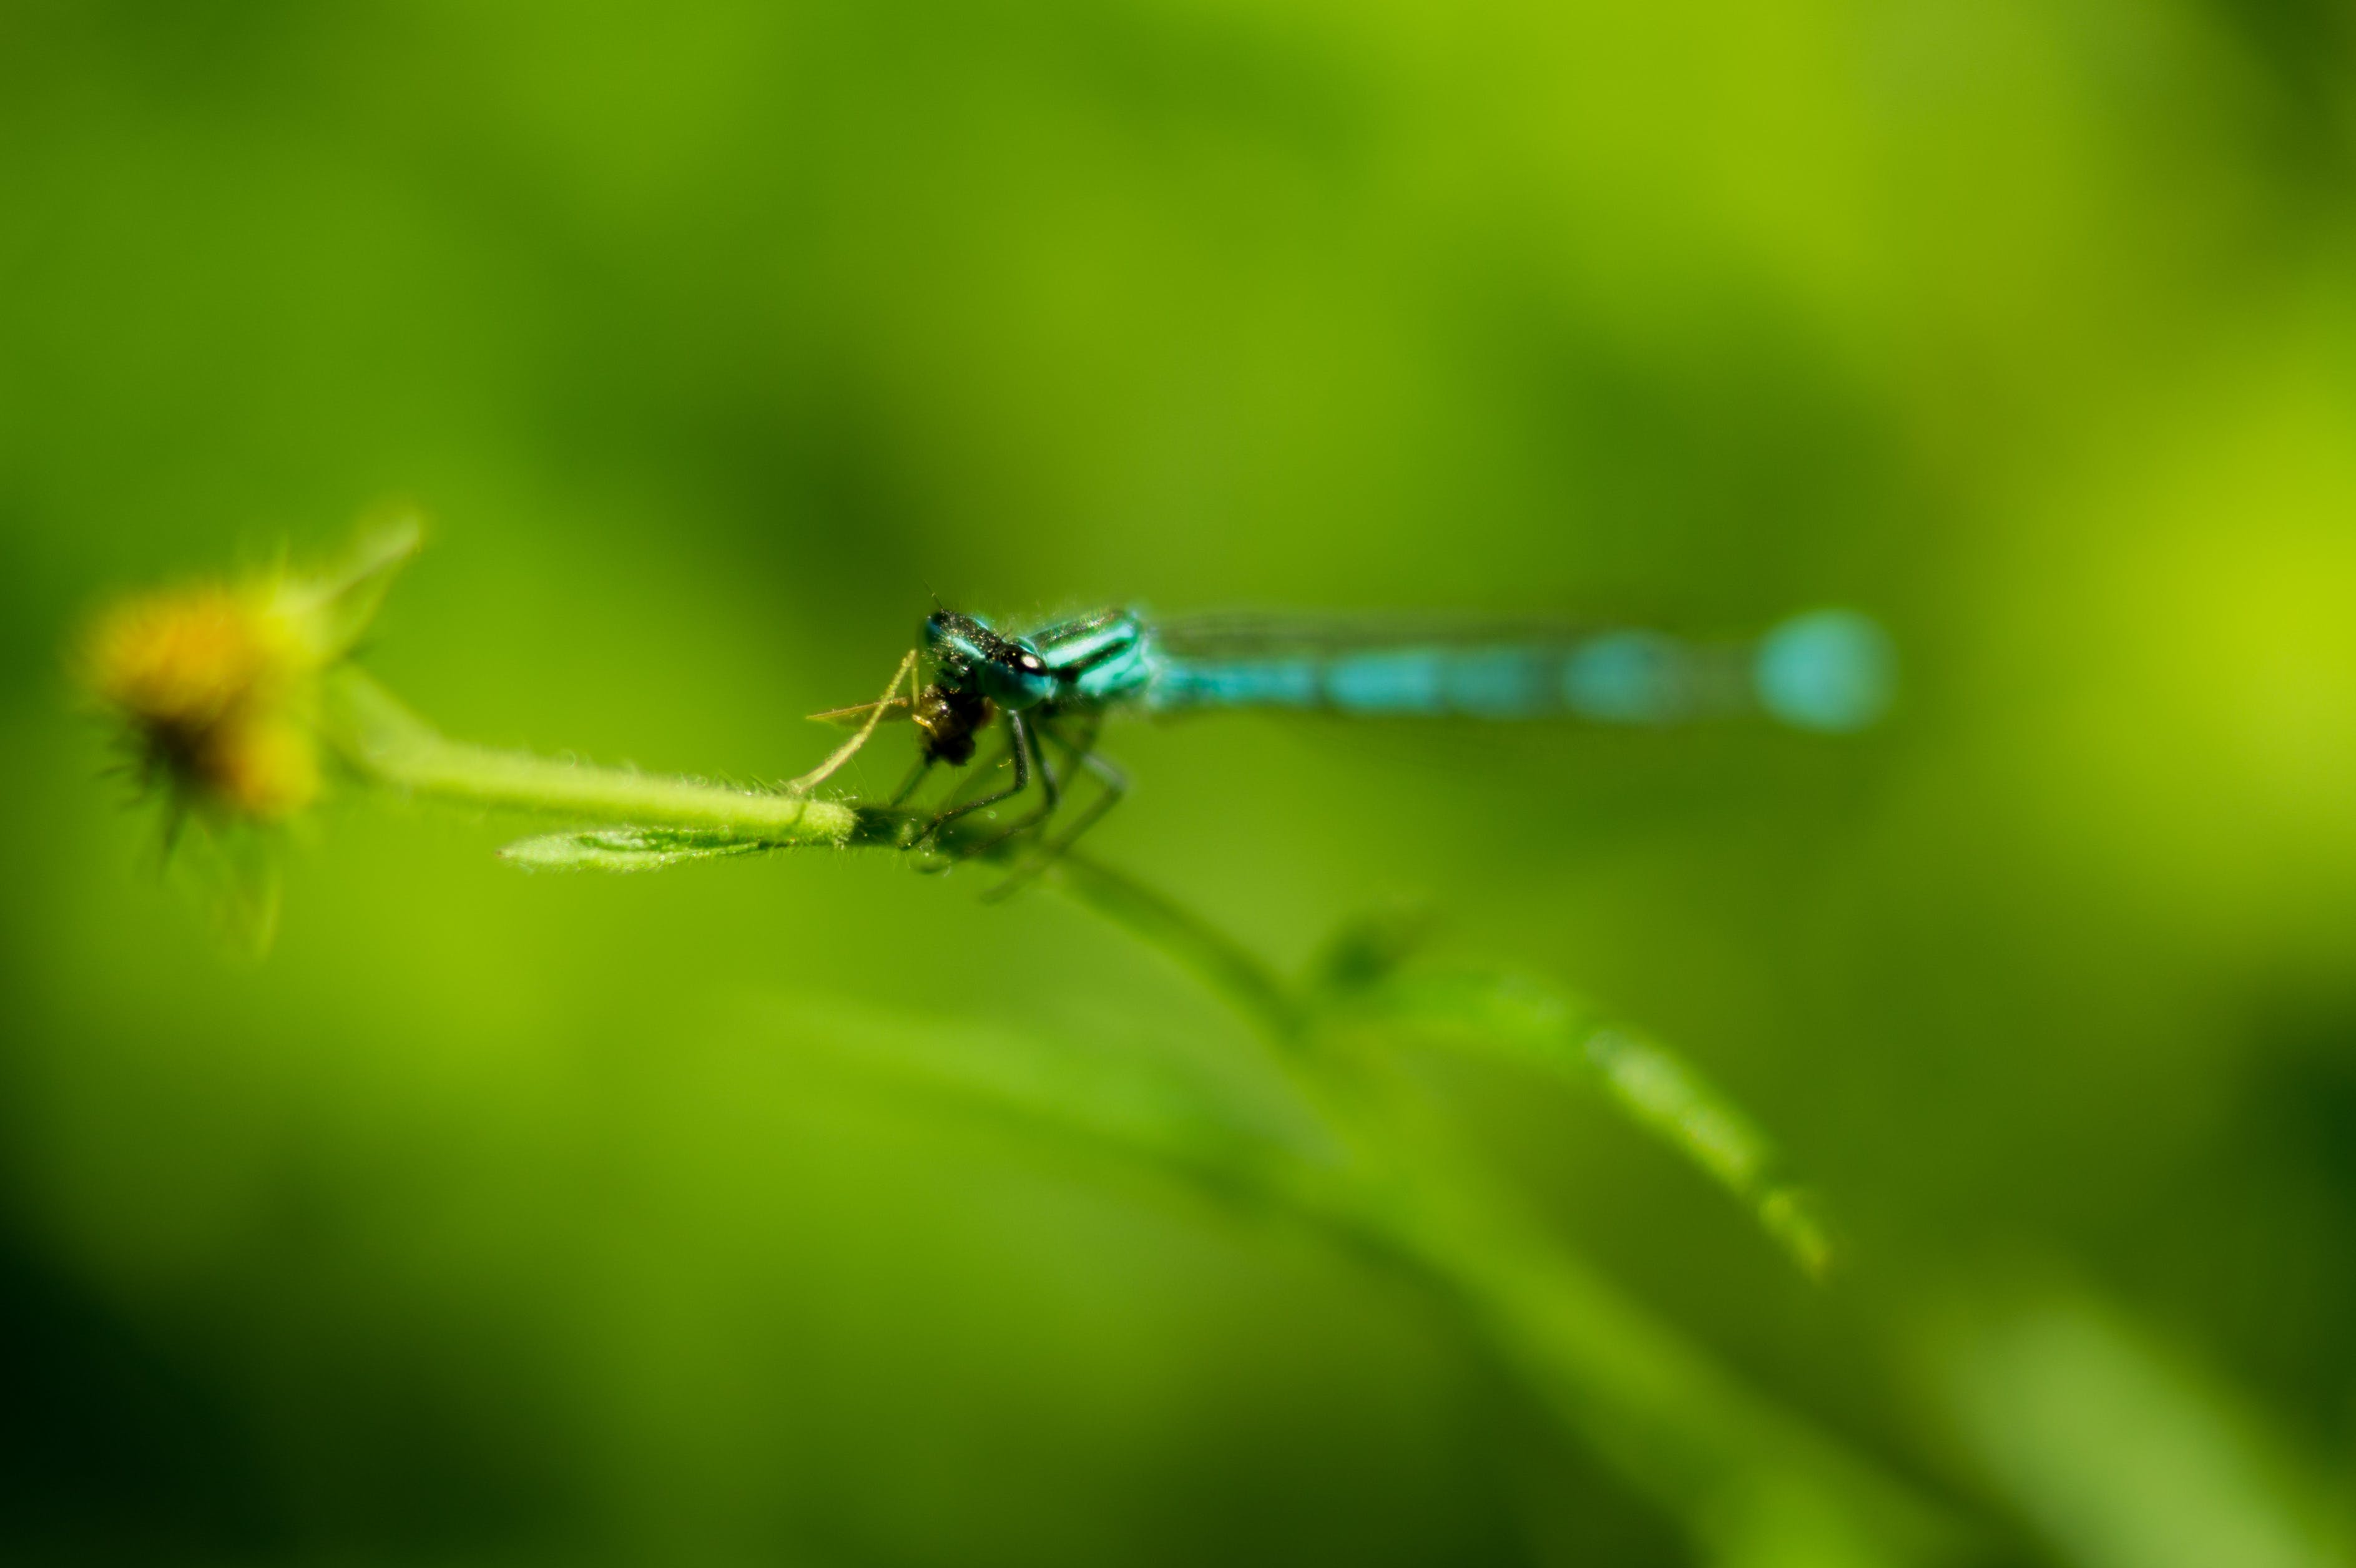 animal, blur, dragonfly